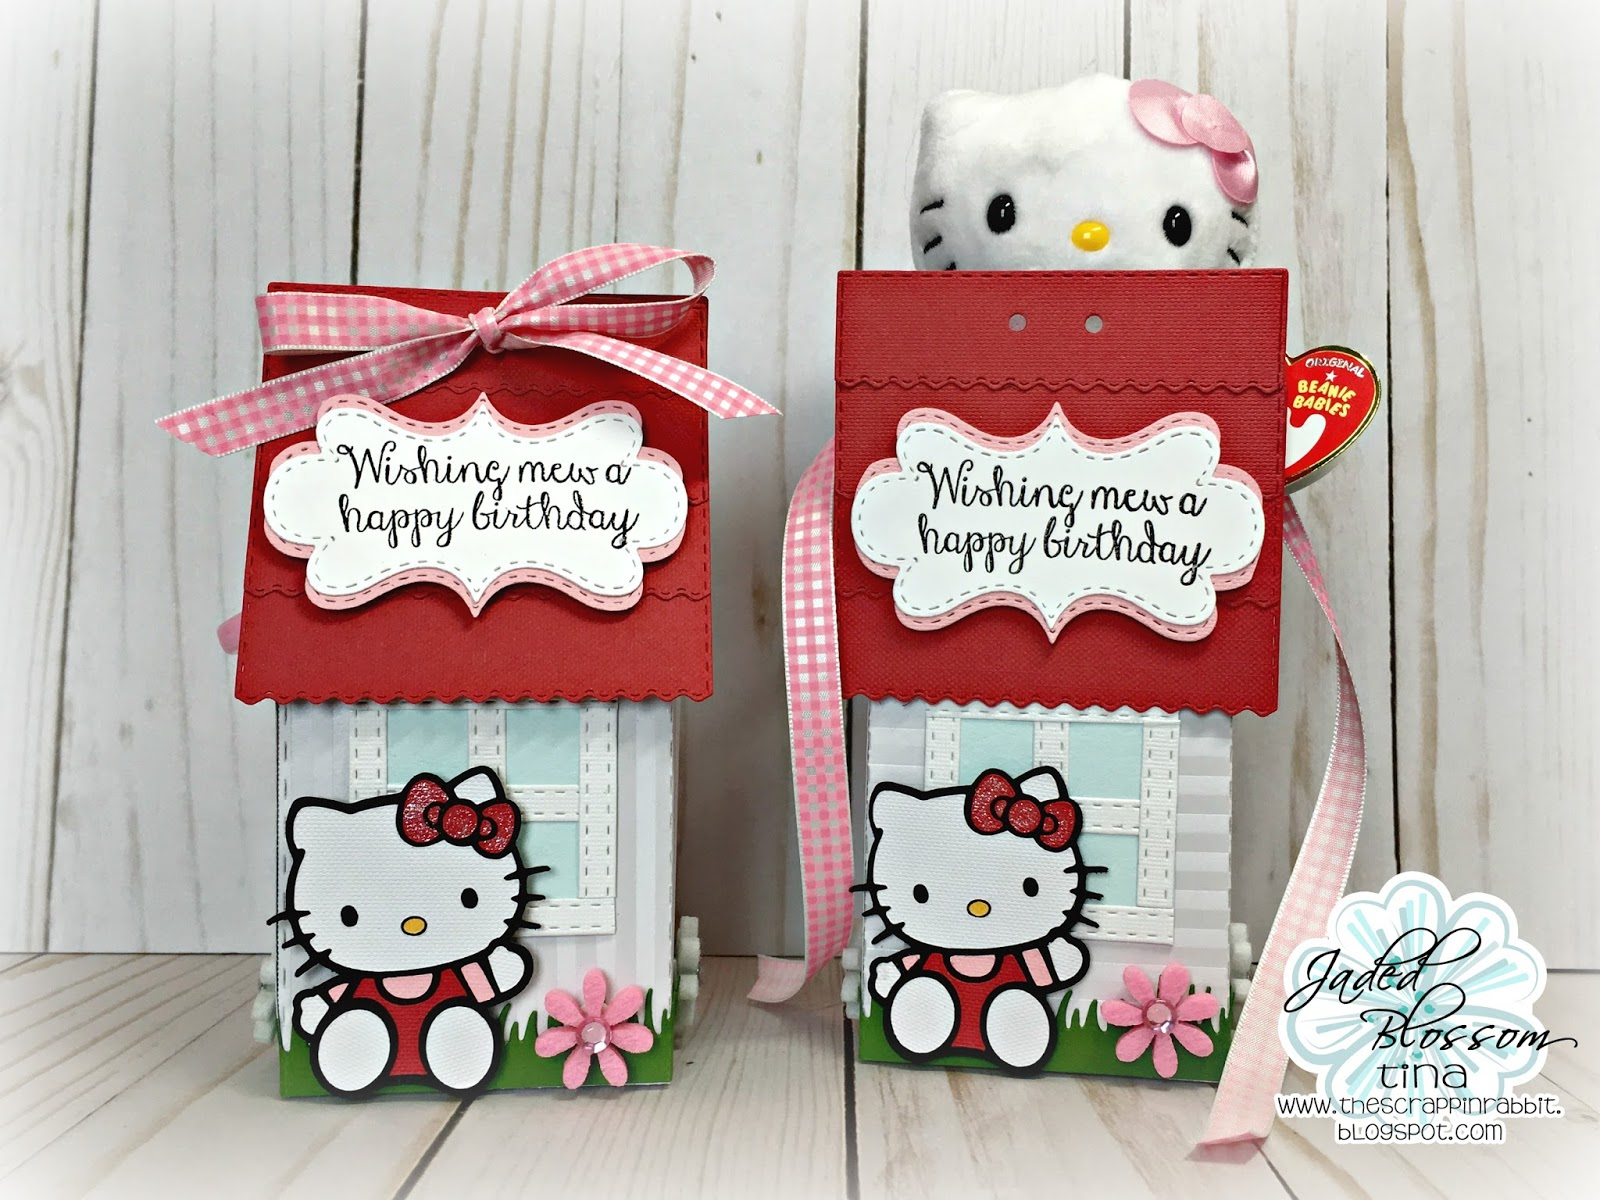 I Created A Couple Gift Box Houses For These Cute Little Hello Kitty Ty  Clips Using The New Gable Box Die.